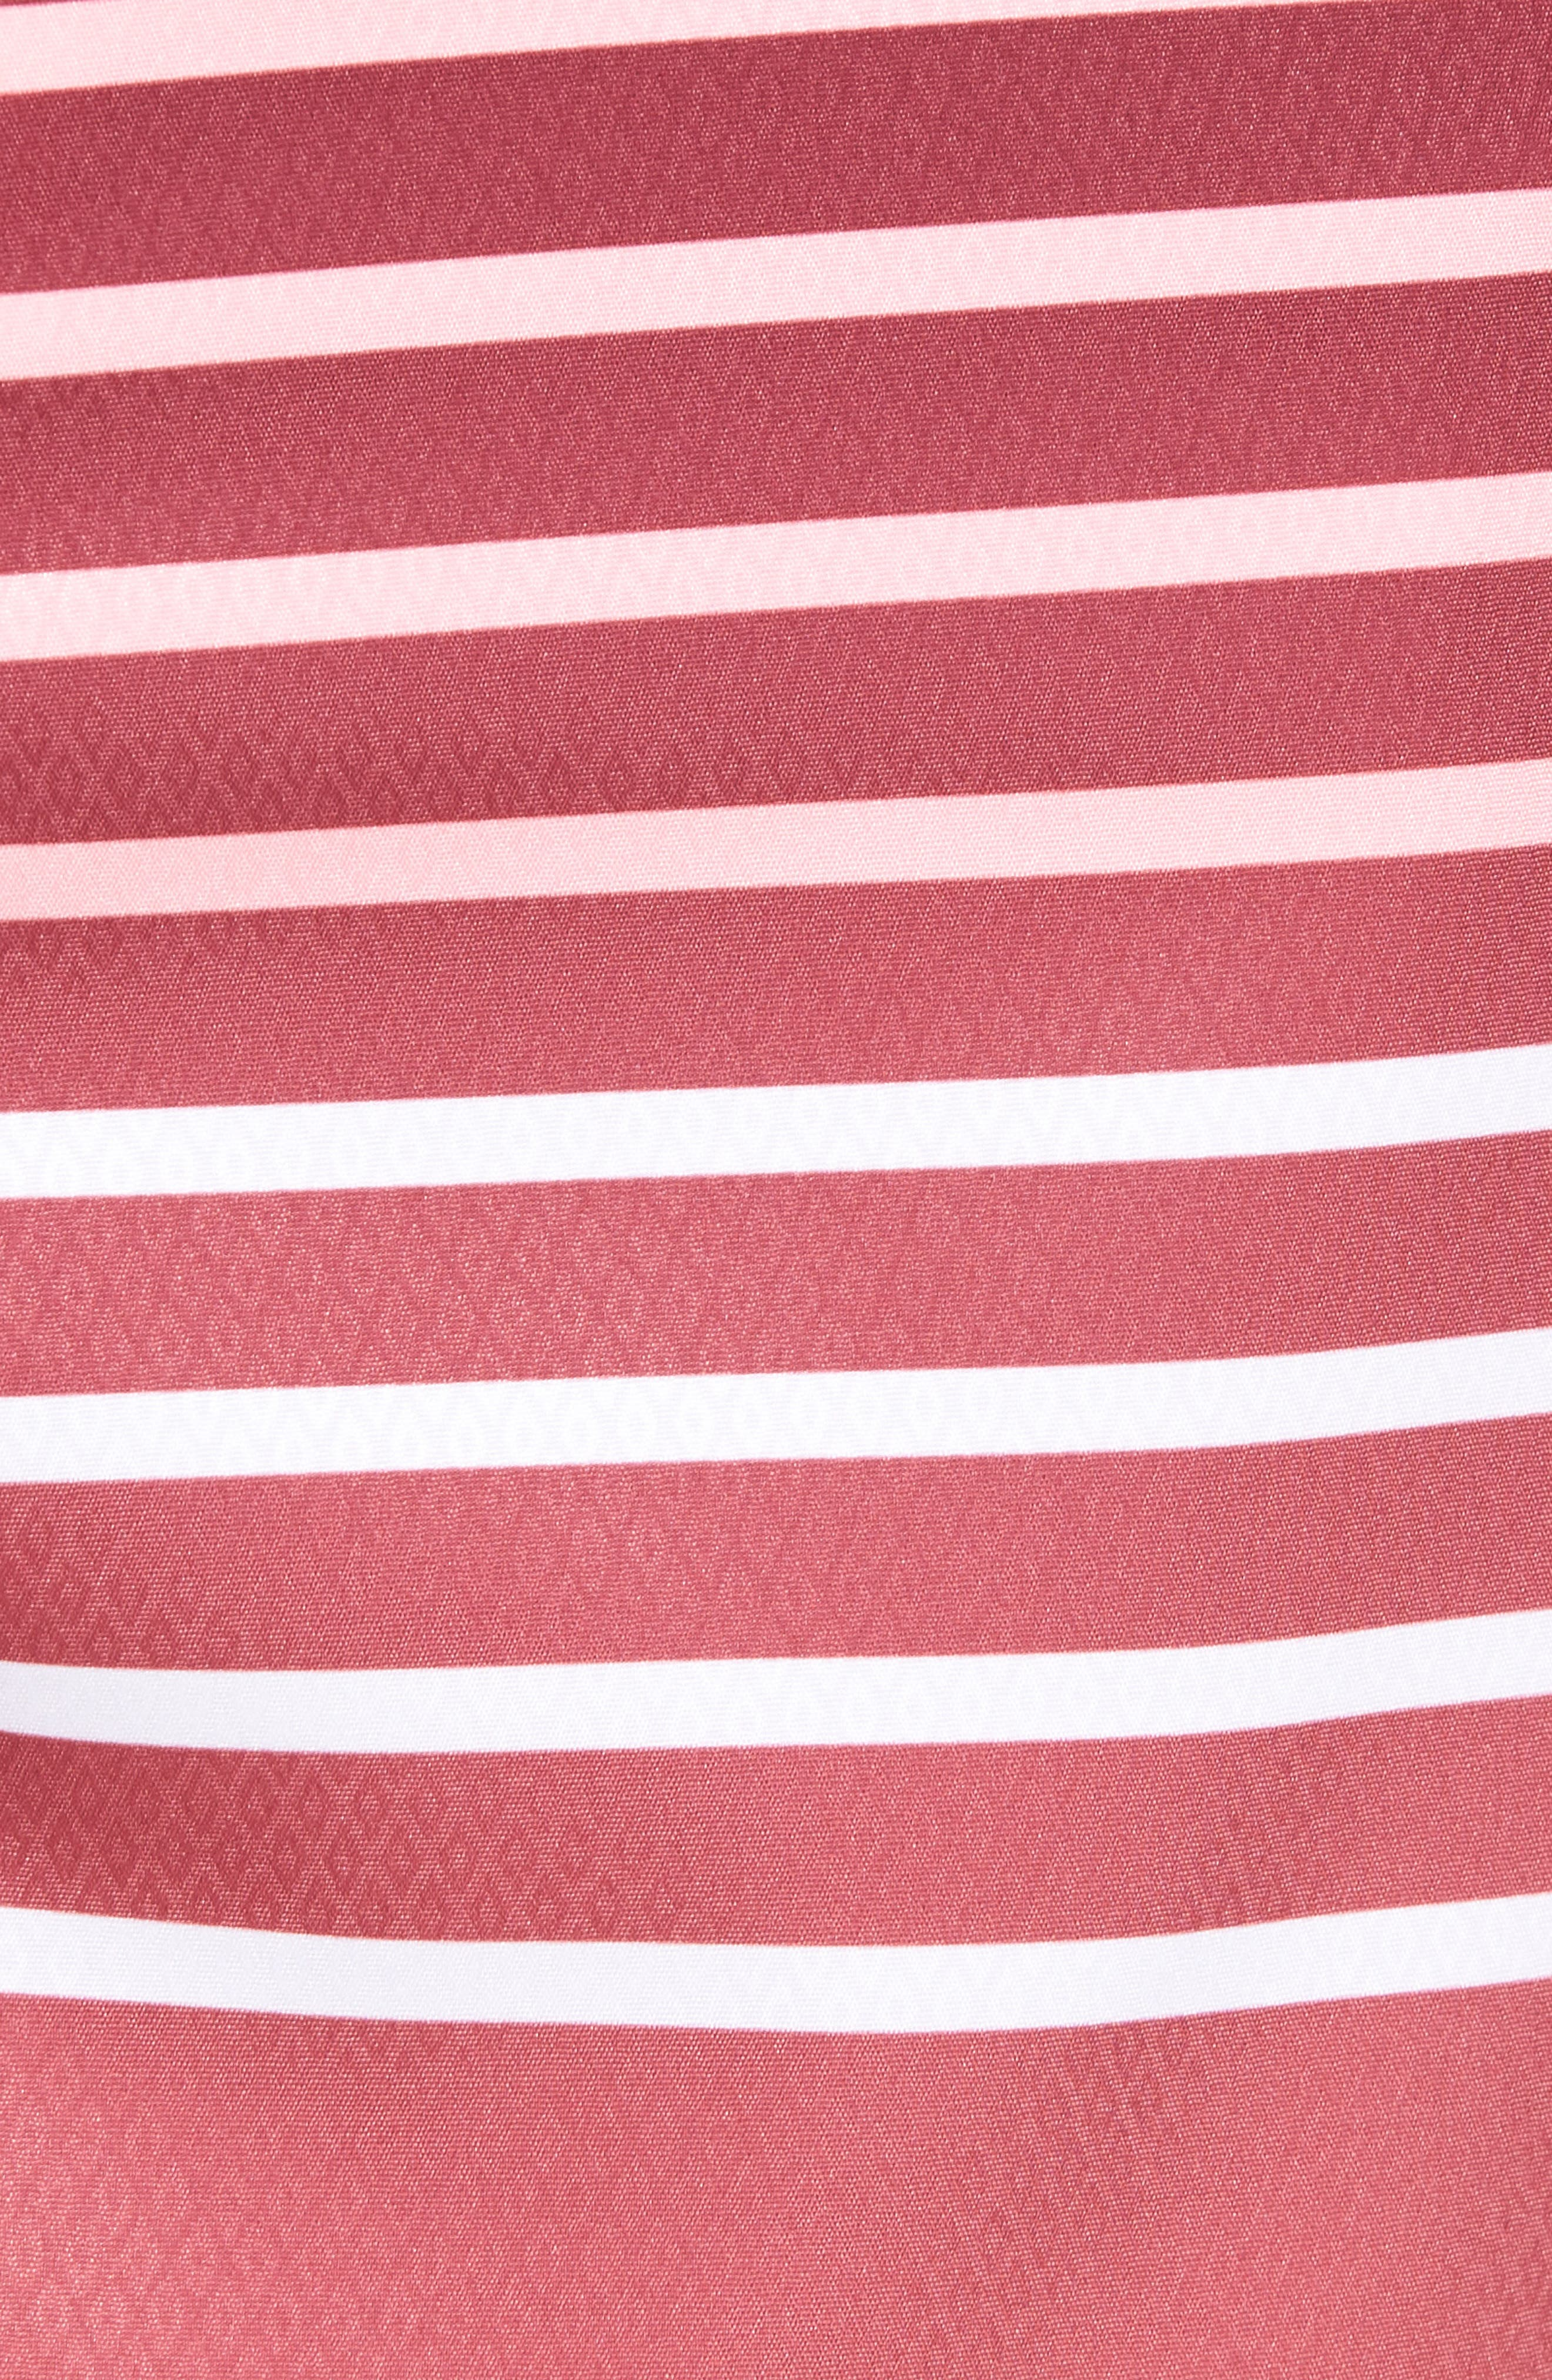 Surflodge Stripe Board Shorts,                             Alternate thumbnail 5, color,                             Jetty Red